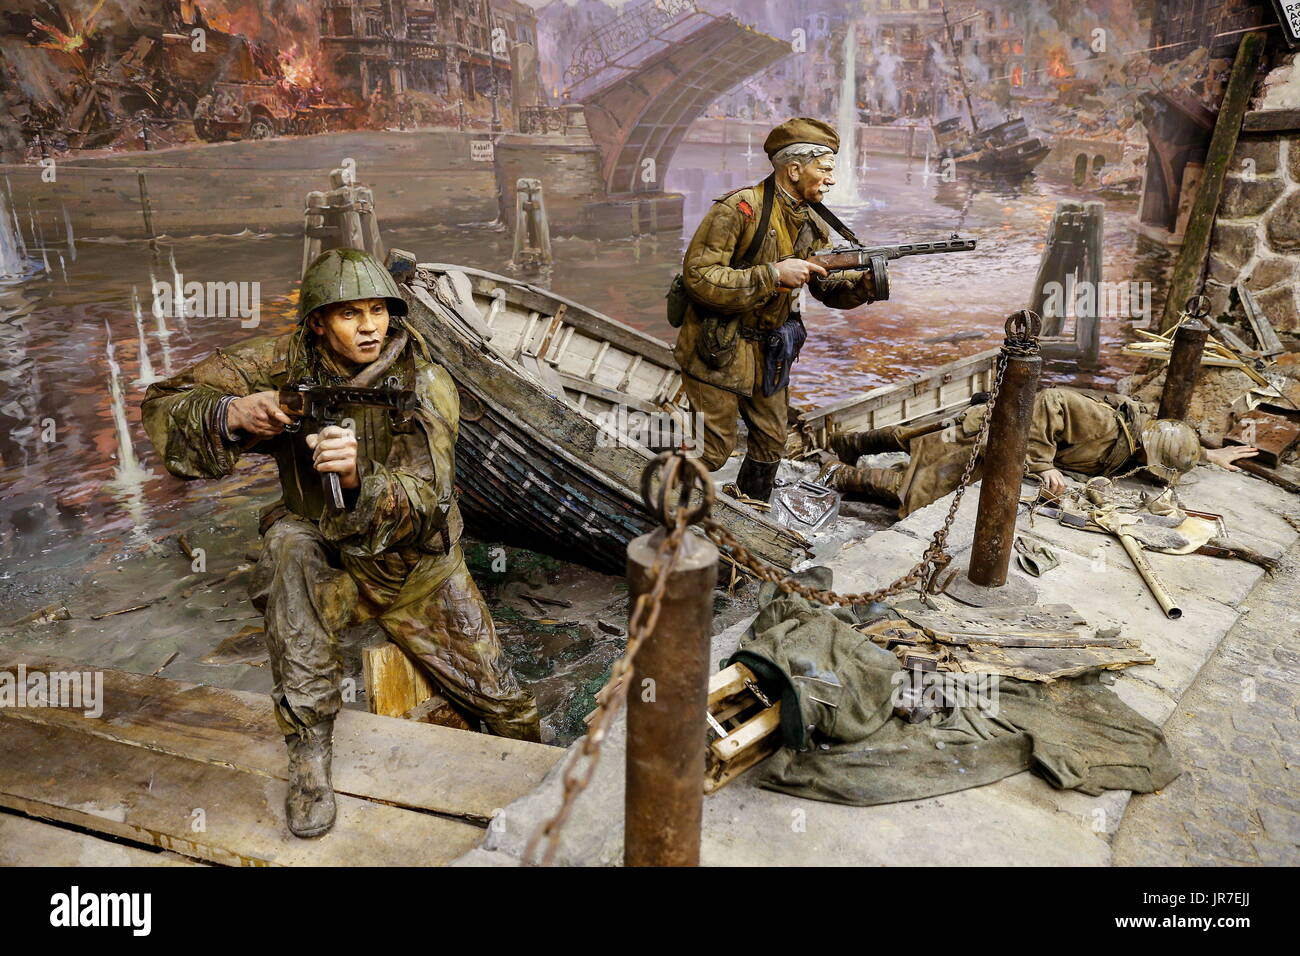 Kaliningrad Region, Russia. 3rd Aug, 2017. Detail of a 3-dimensional panoramic exhibition titled 'Konigsberg 1945: the Final Assault' at the Kaliningrad Region Museum of History and Arts; the 360-degree display, which depicts the April 1945 assault by the Red Army on the city of Konigsberg in WWII, is an artwork by the Nevsky Batalist team led by Dmitry Poshtarenko. Credit: Vitaly Nevar/TASS/Alamy Live News - Stock Image